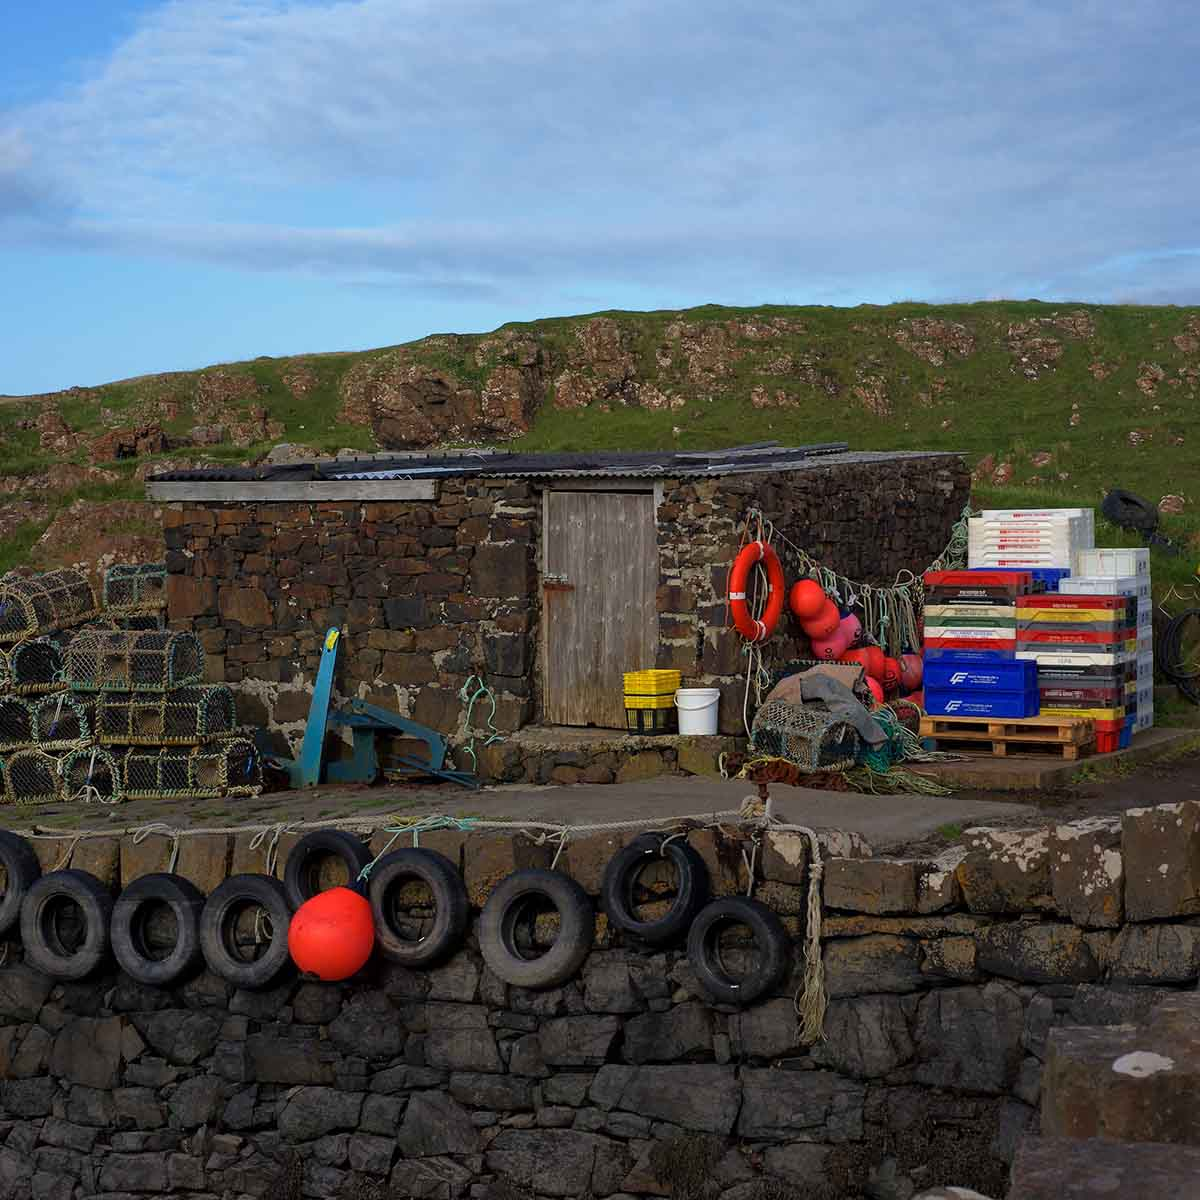 Treshnish, Mull, self-catering, fishing equipment